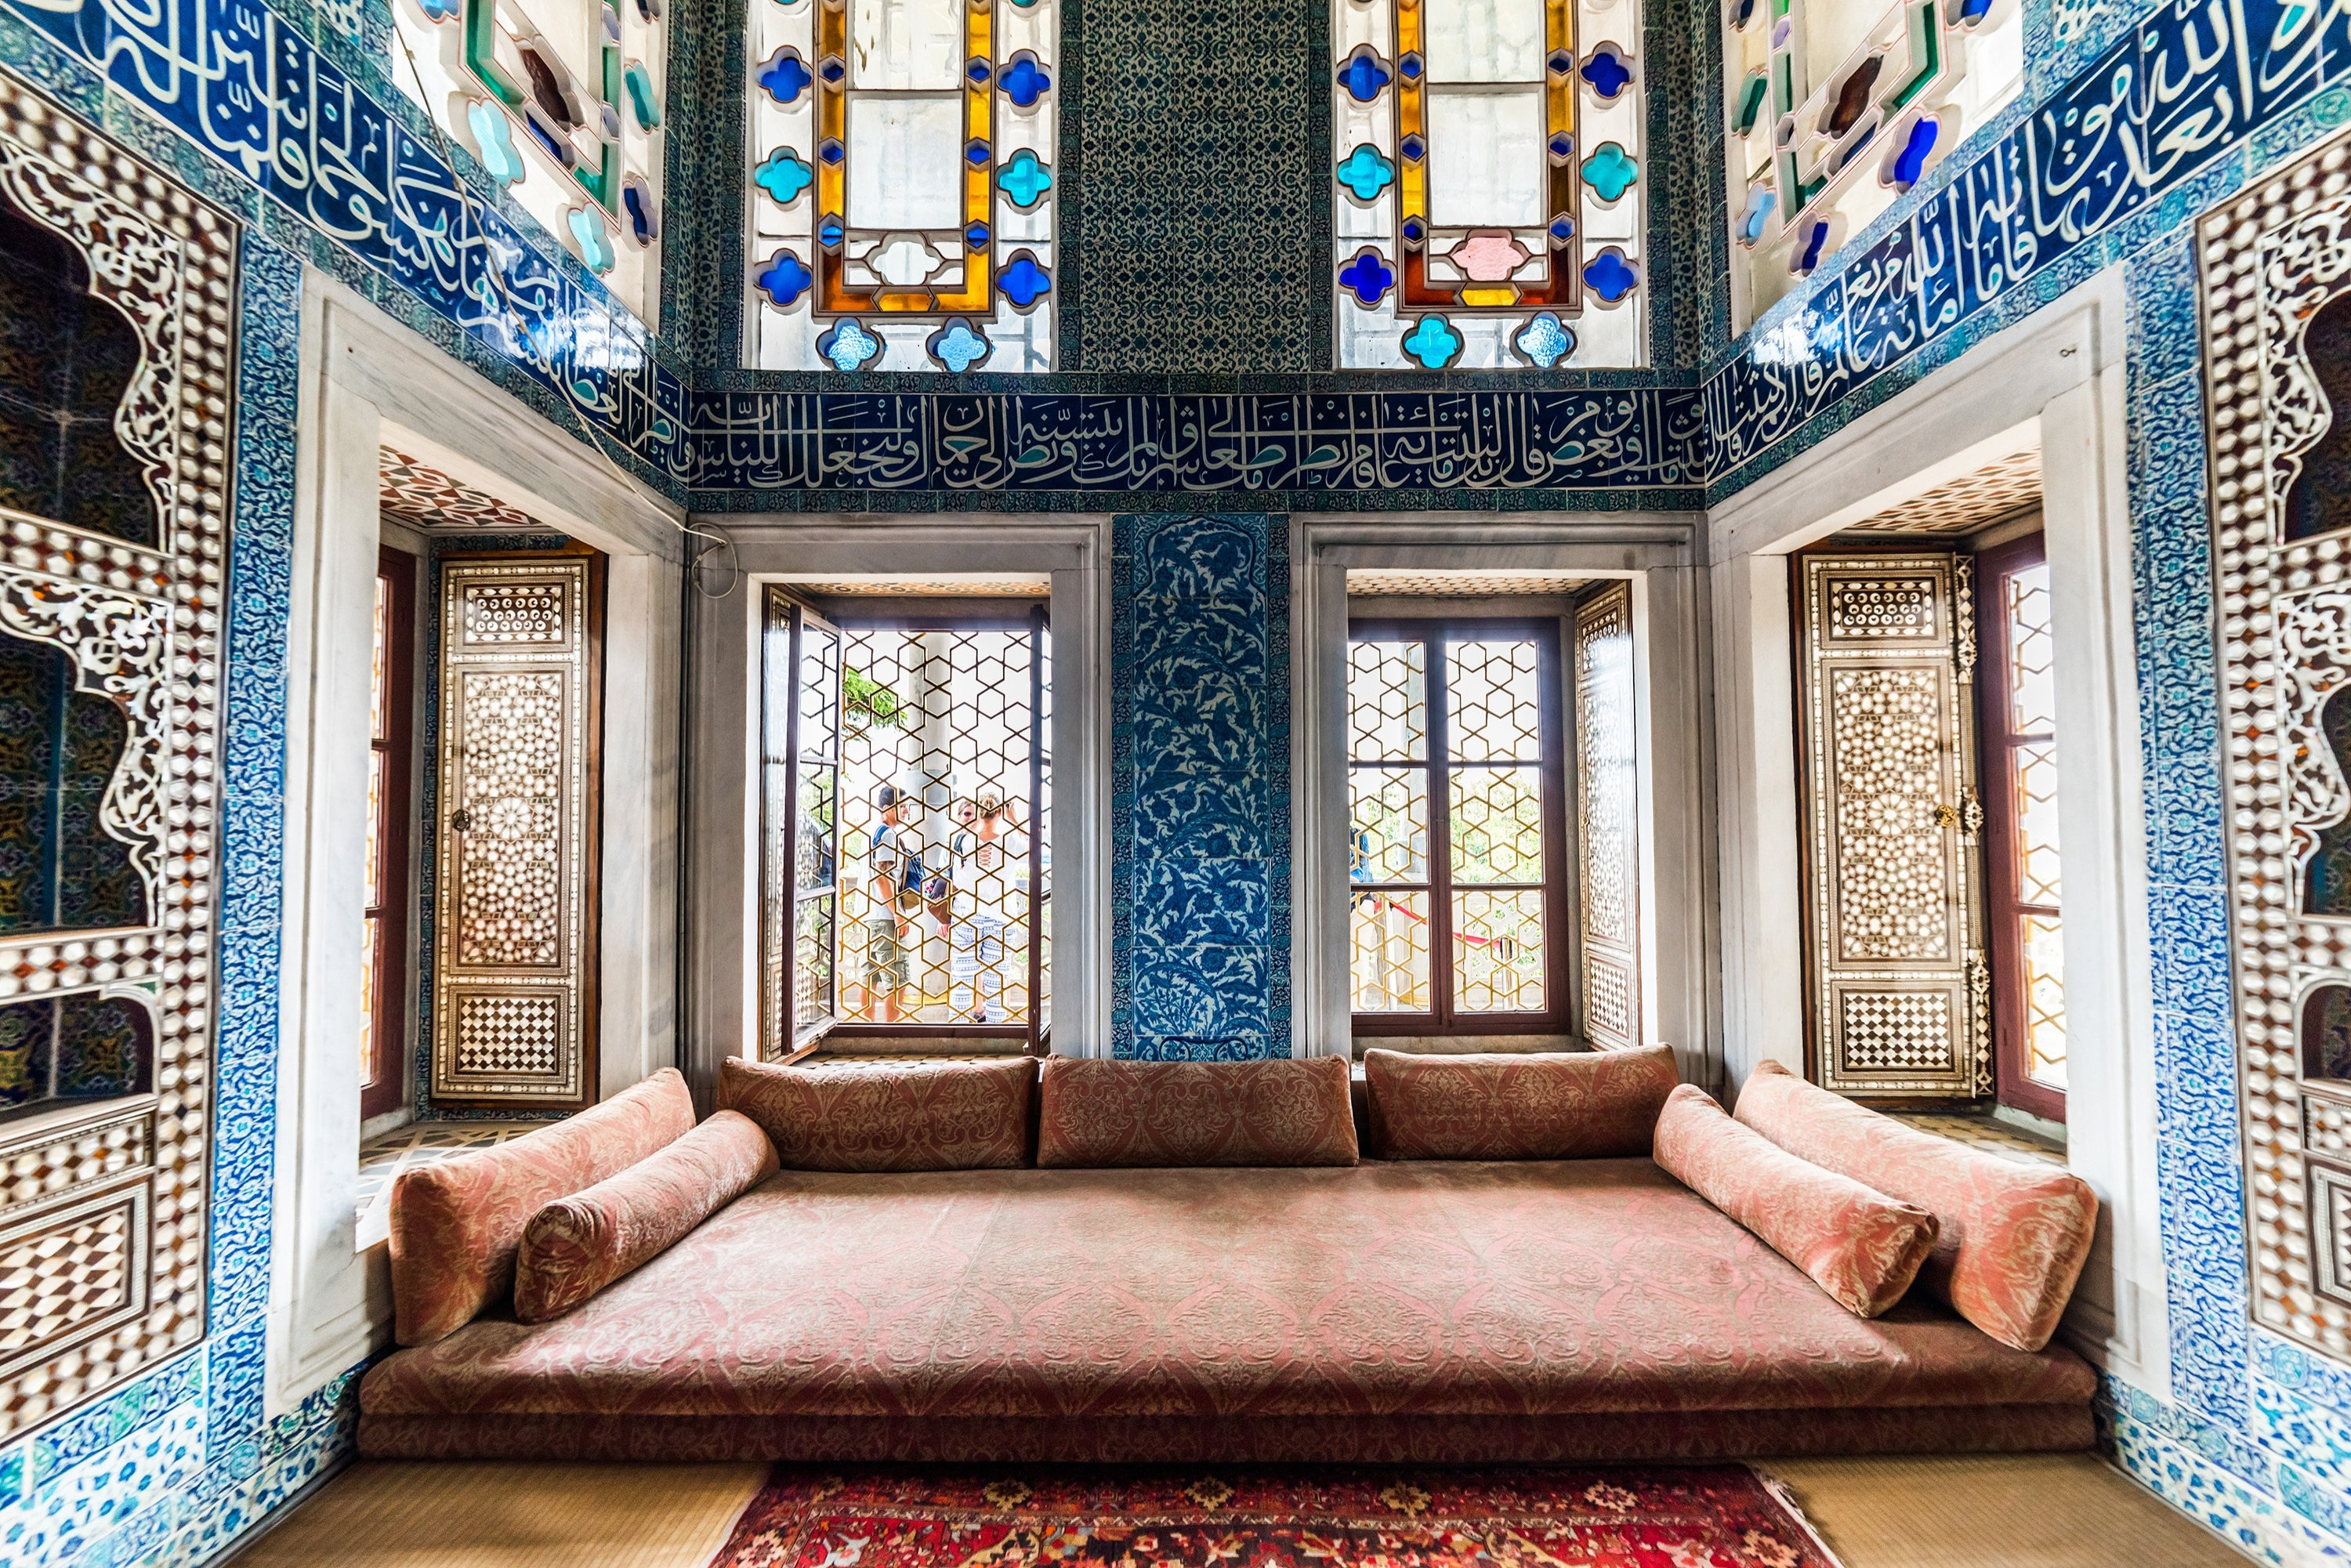 A room with Ottoman decoration in Topkapı Palace, Istanbul. (Shutterstcok Photo)